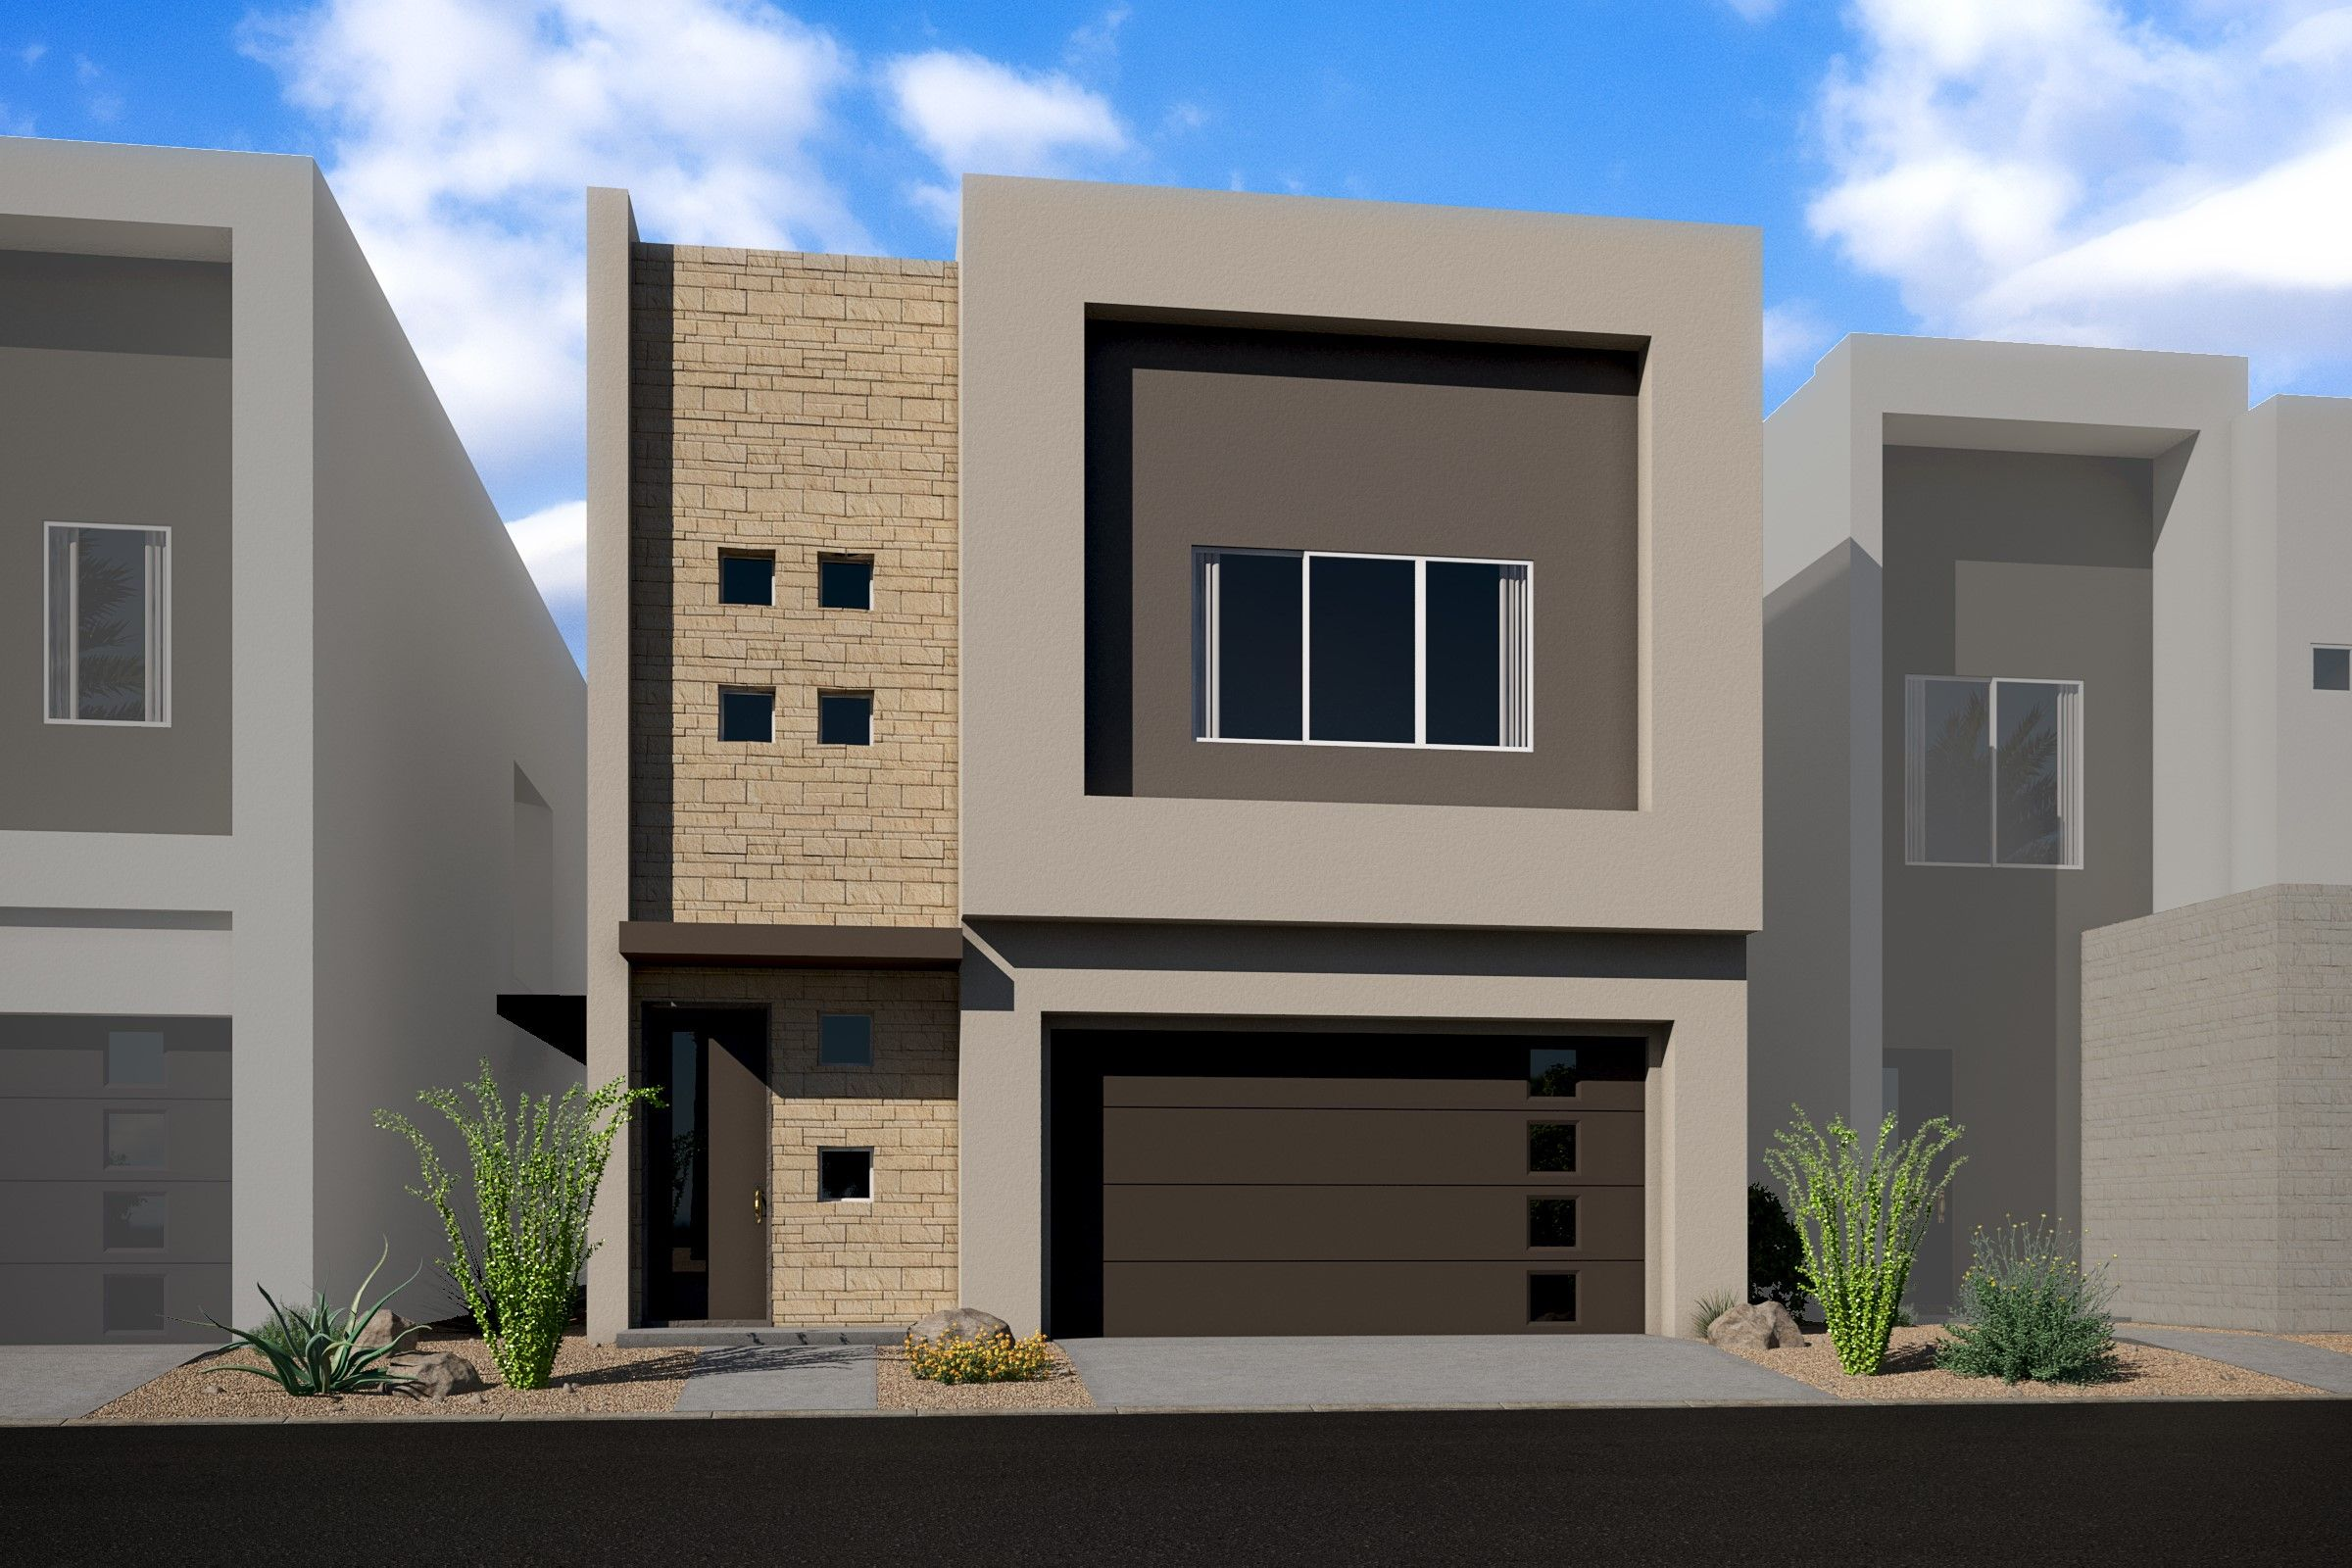 Single Family for Sale at Skye - Prelude 68th Street And Mcdowell Rd Scottsdale, Arizona 85251 United States